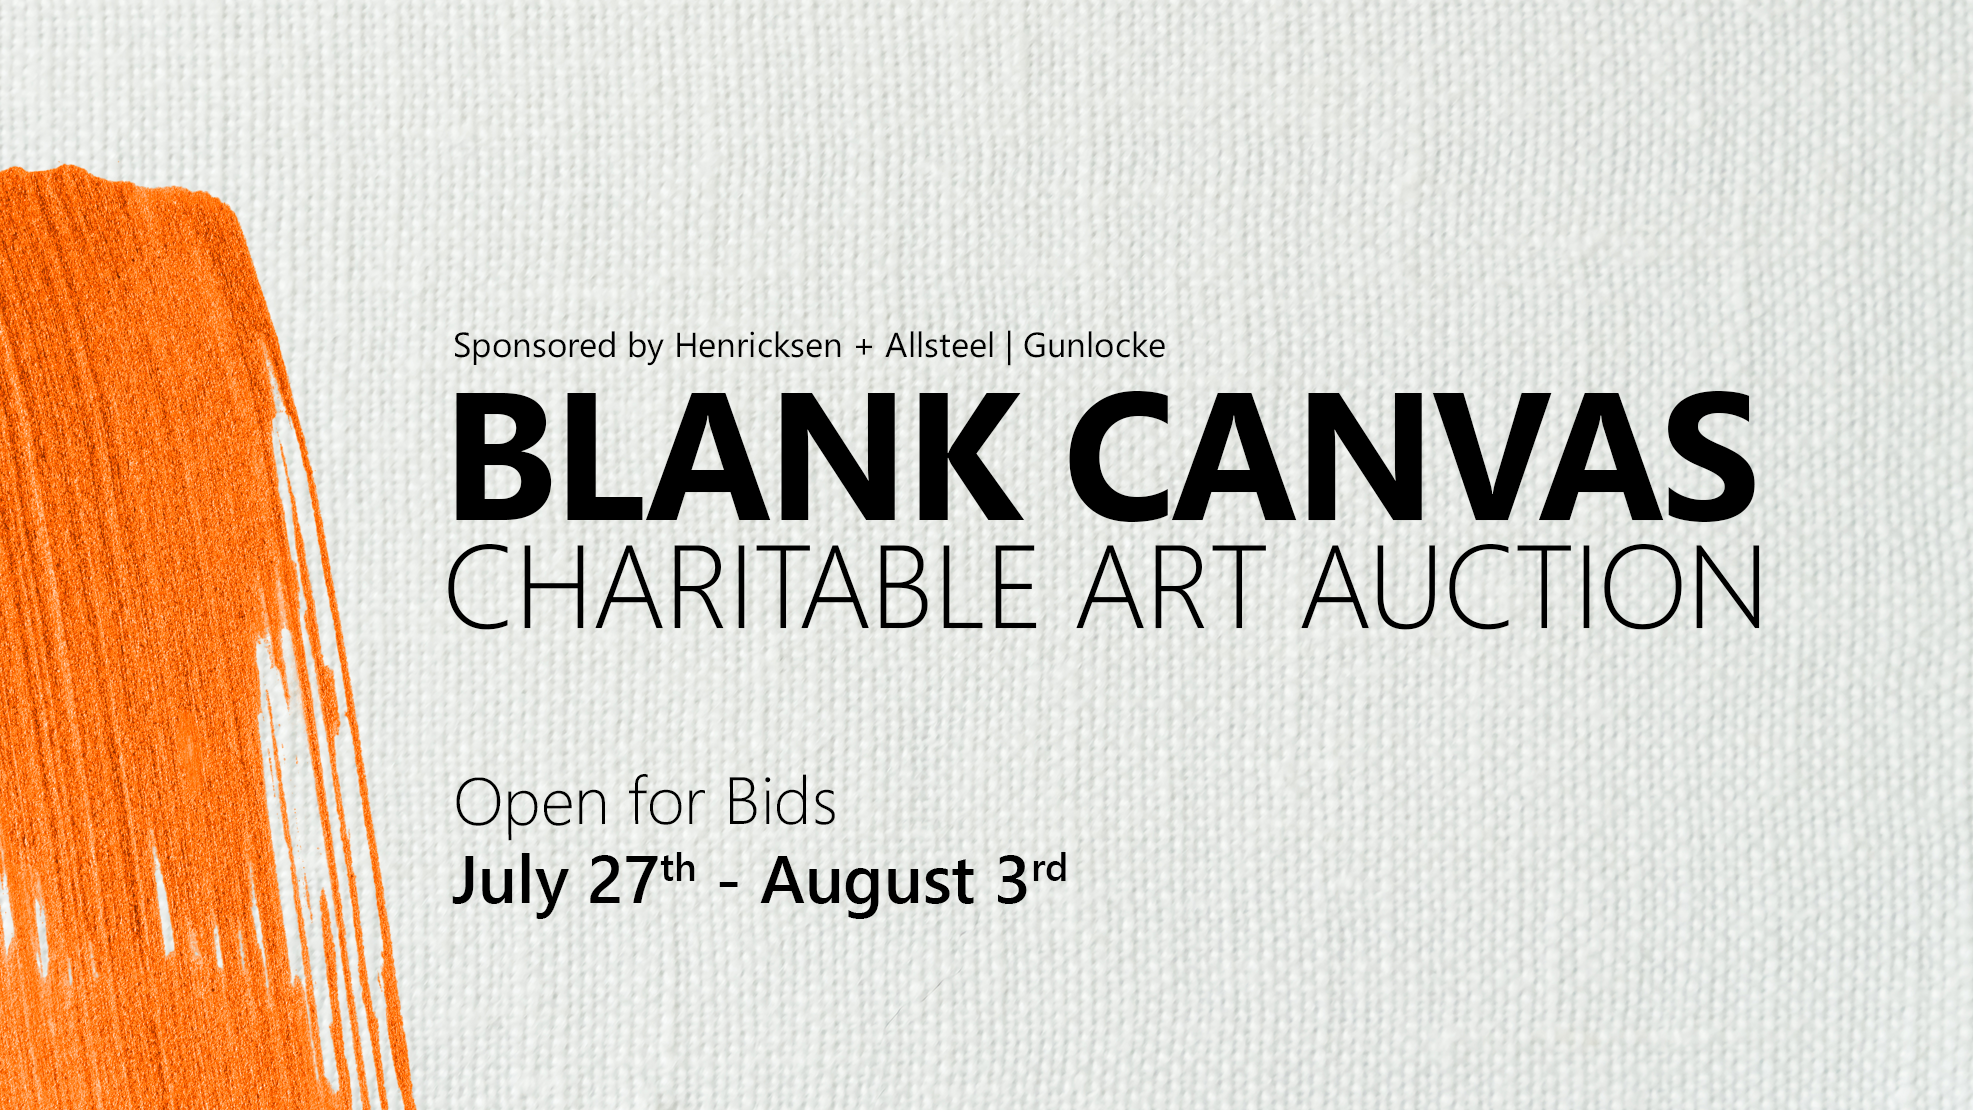 Blank Canvas Charitable Art Auction